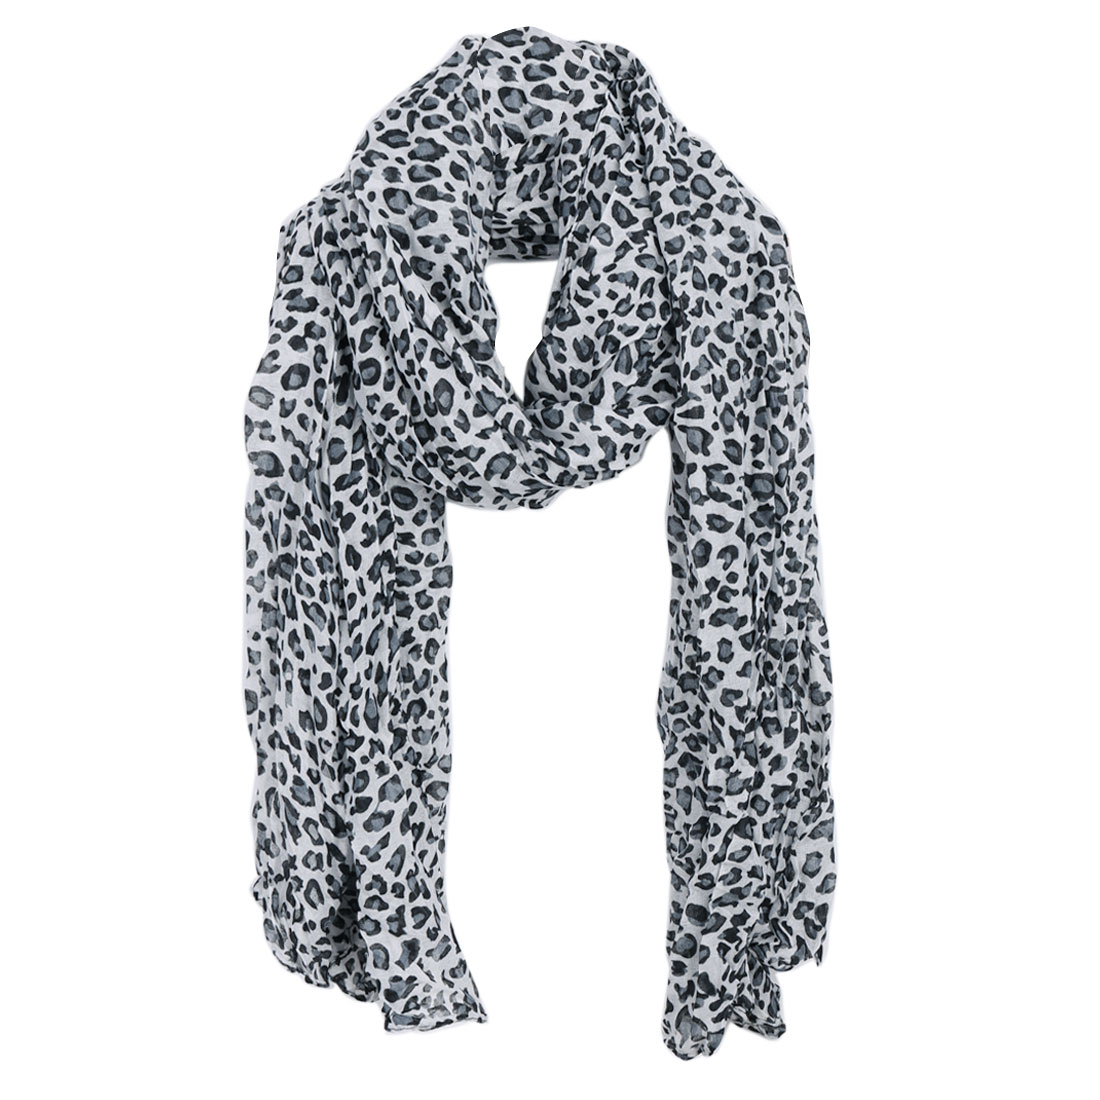 Women Semi Sheer Soft Stylish Scarf Light Gray Black